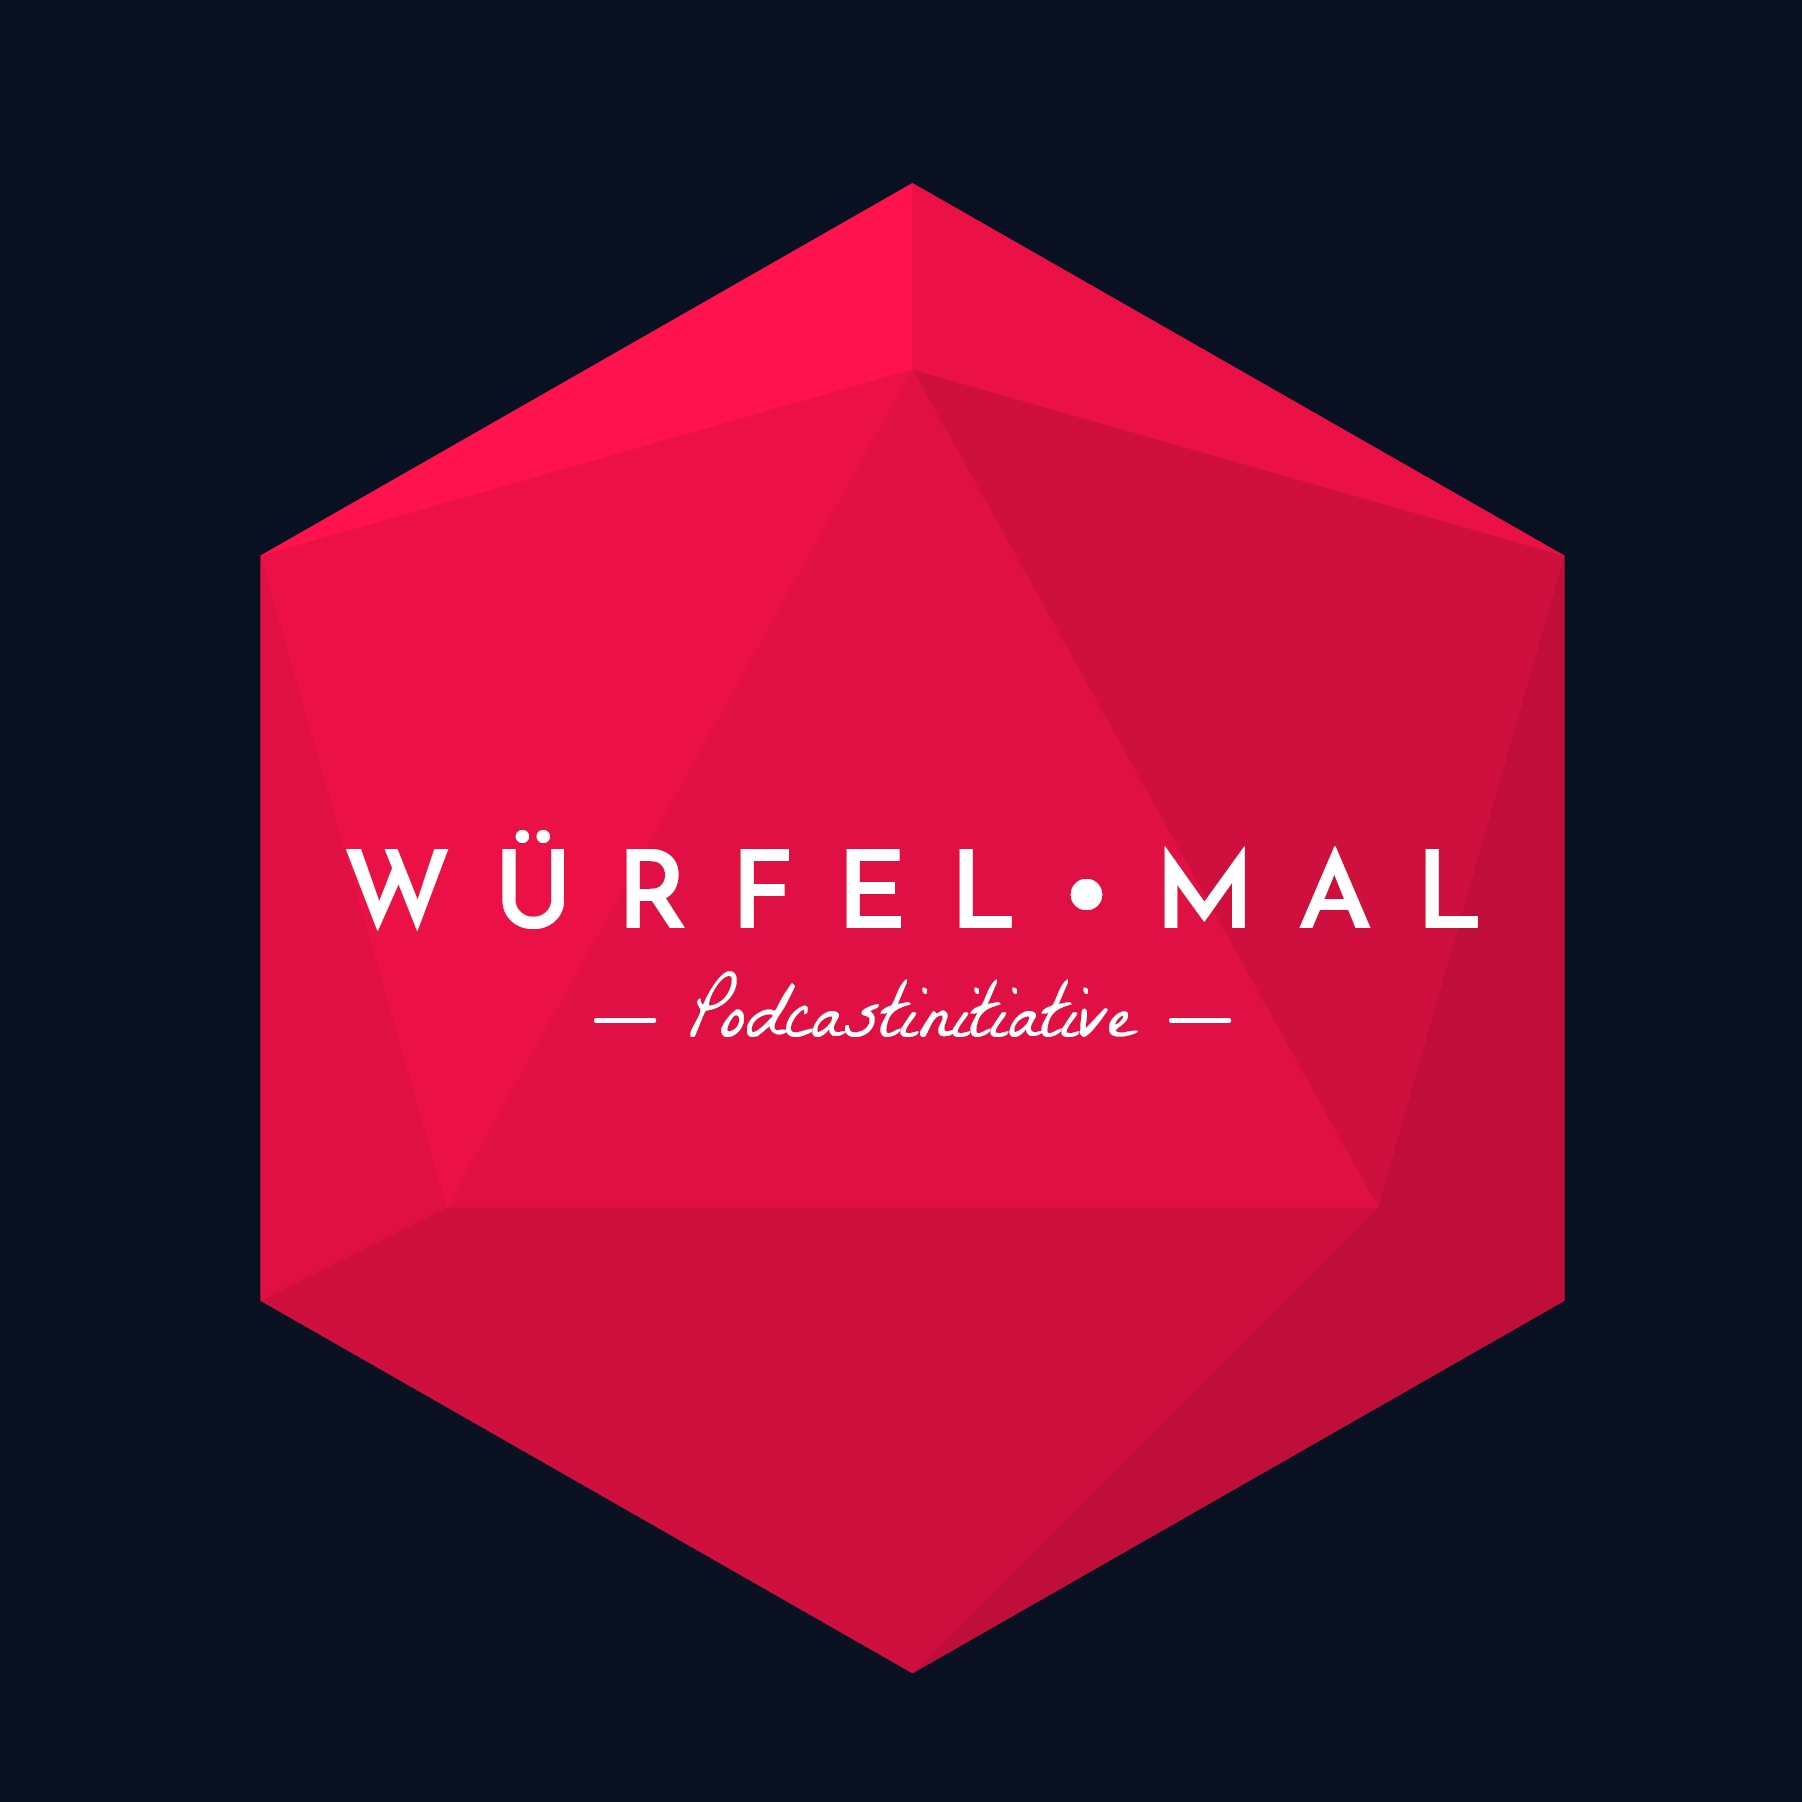 Logodesign Pen and Paper Podcast Würfel Mal